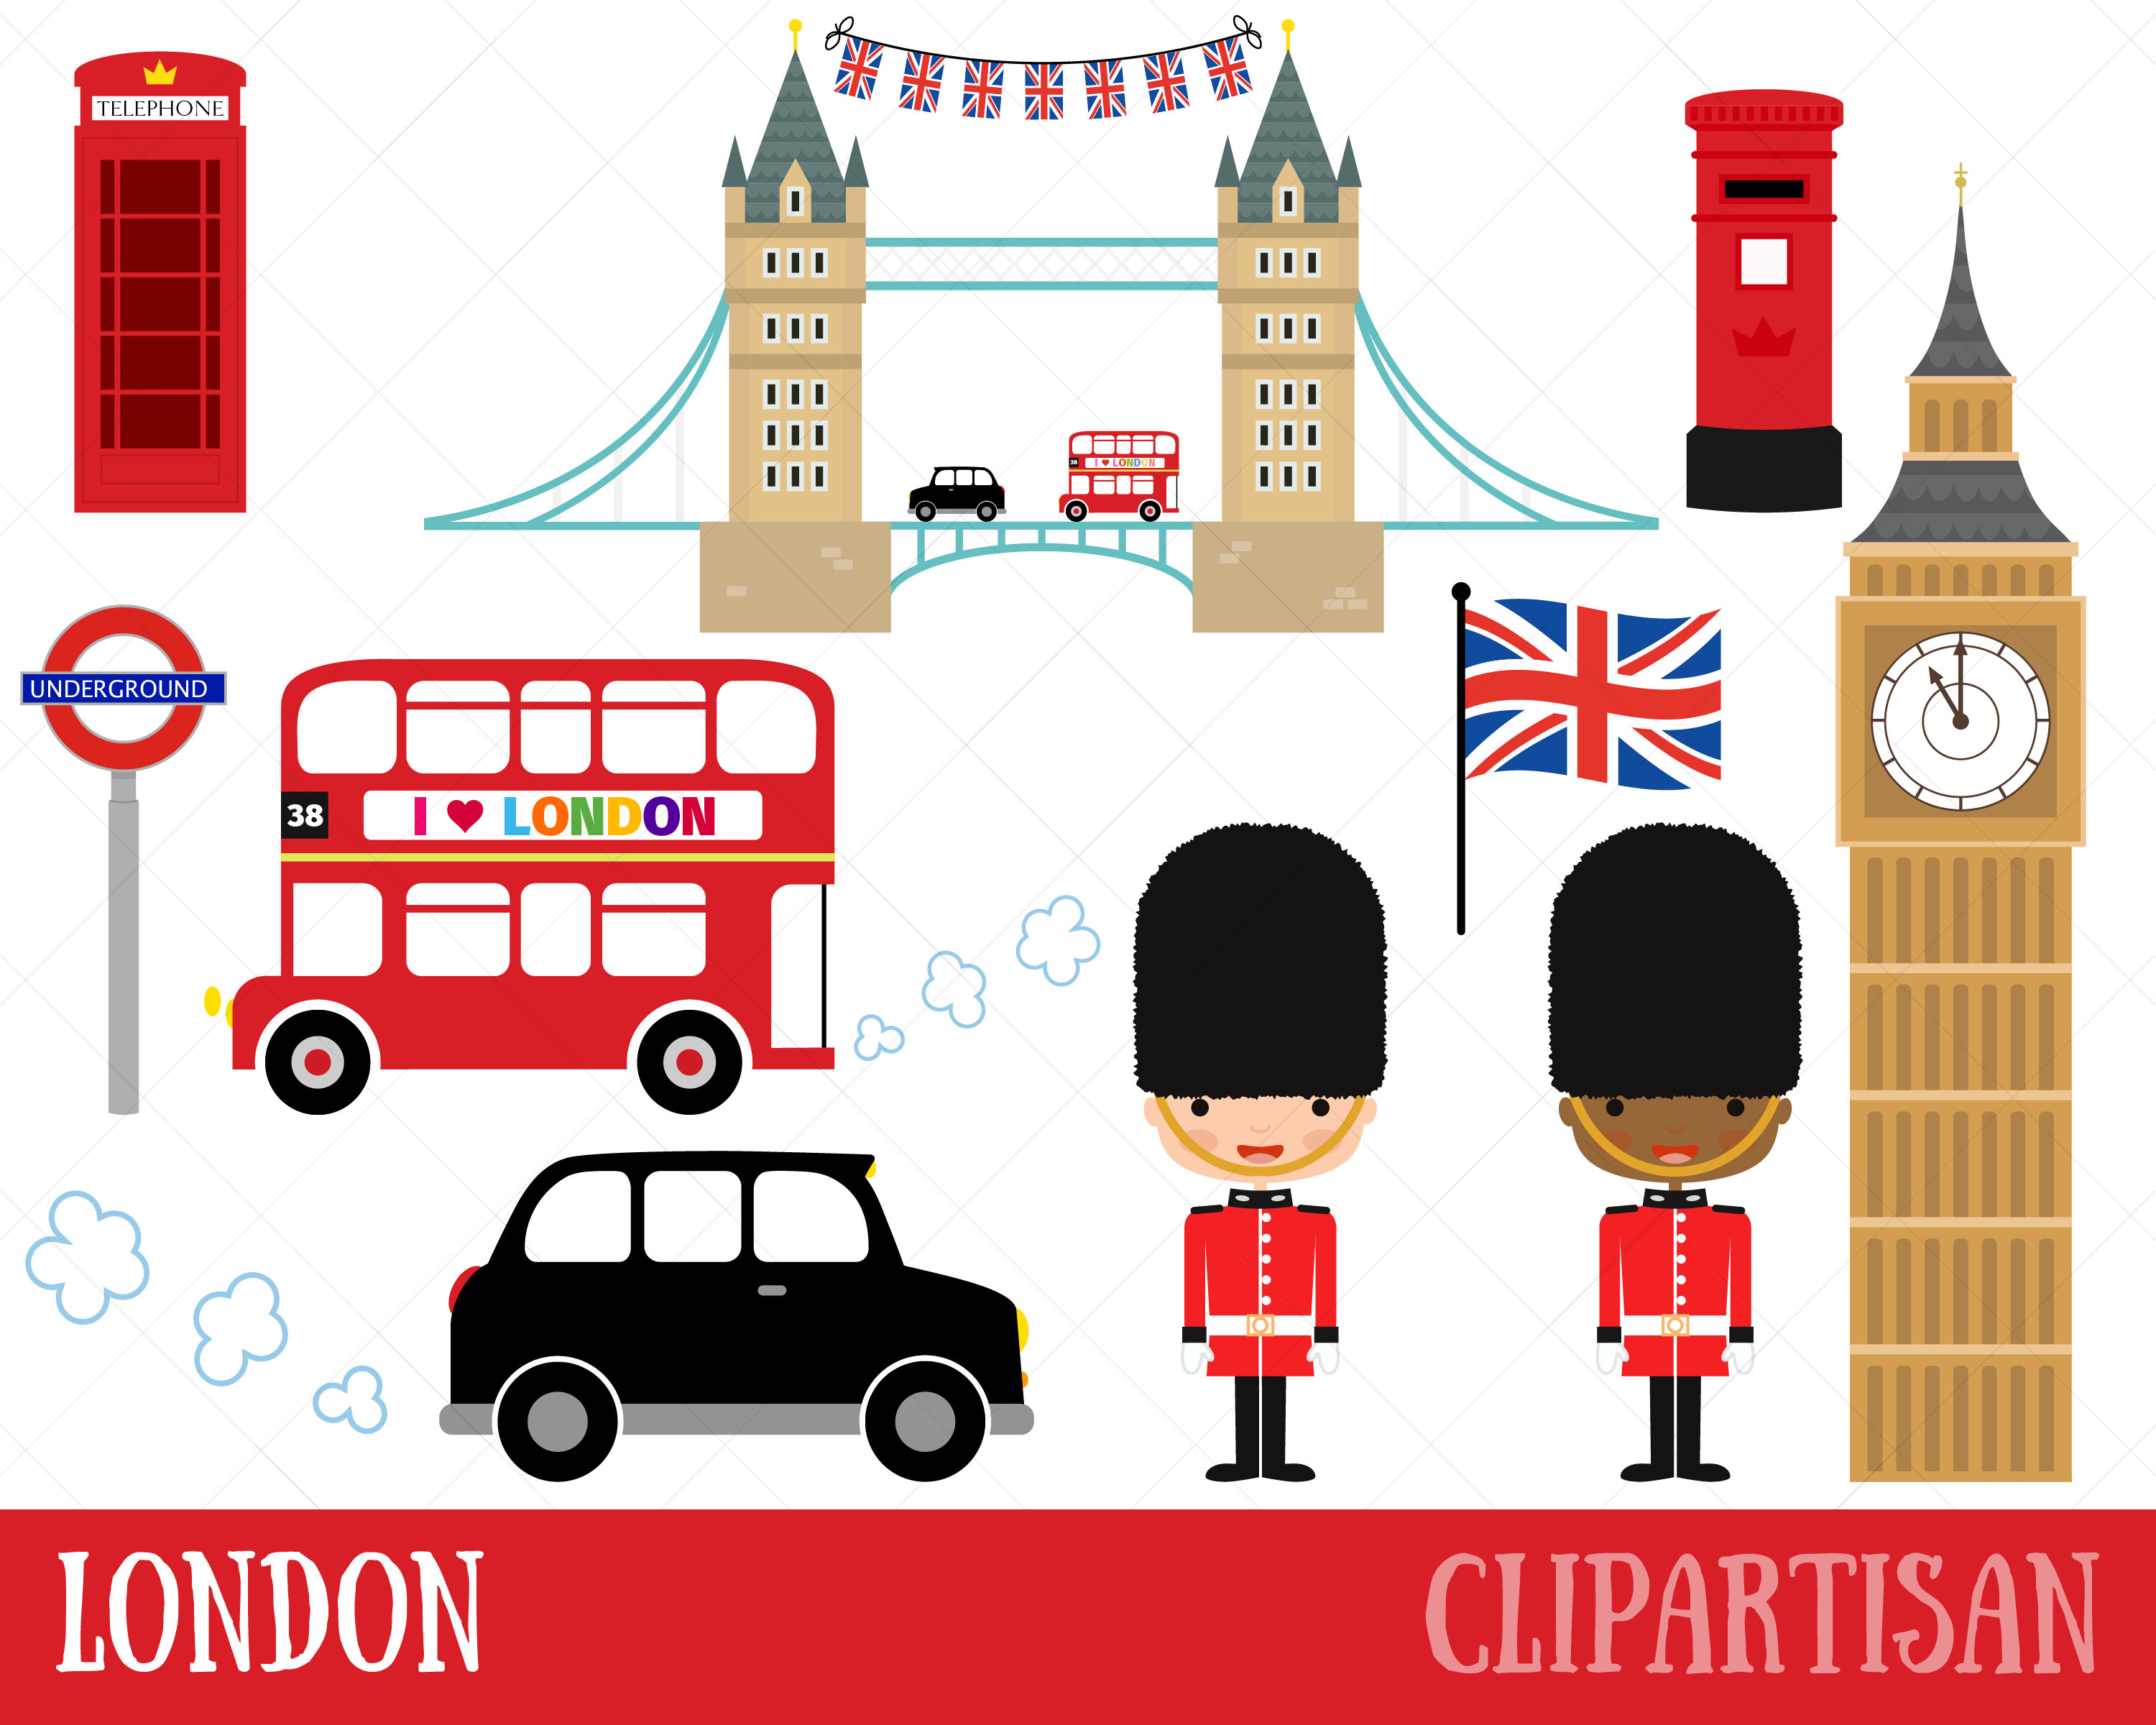 London Clipart & Look At Clip Art Images.